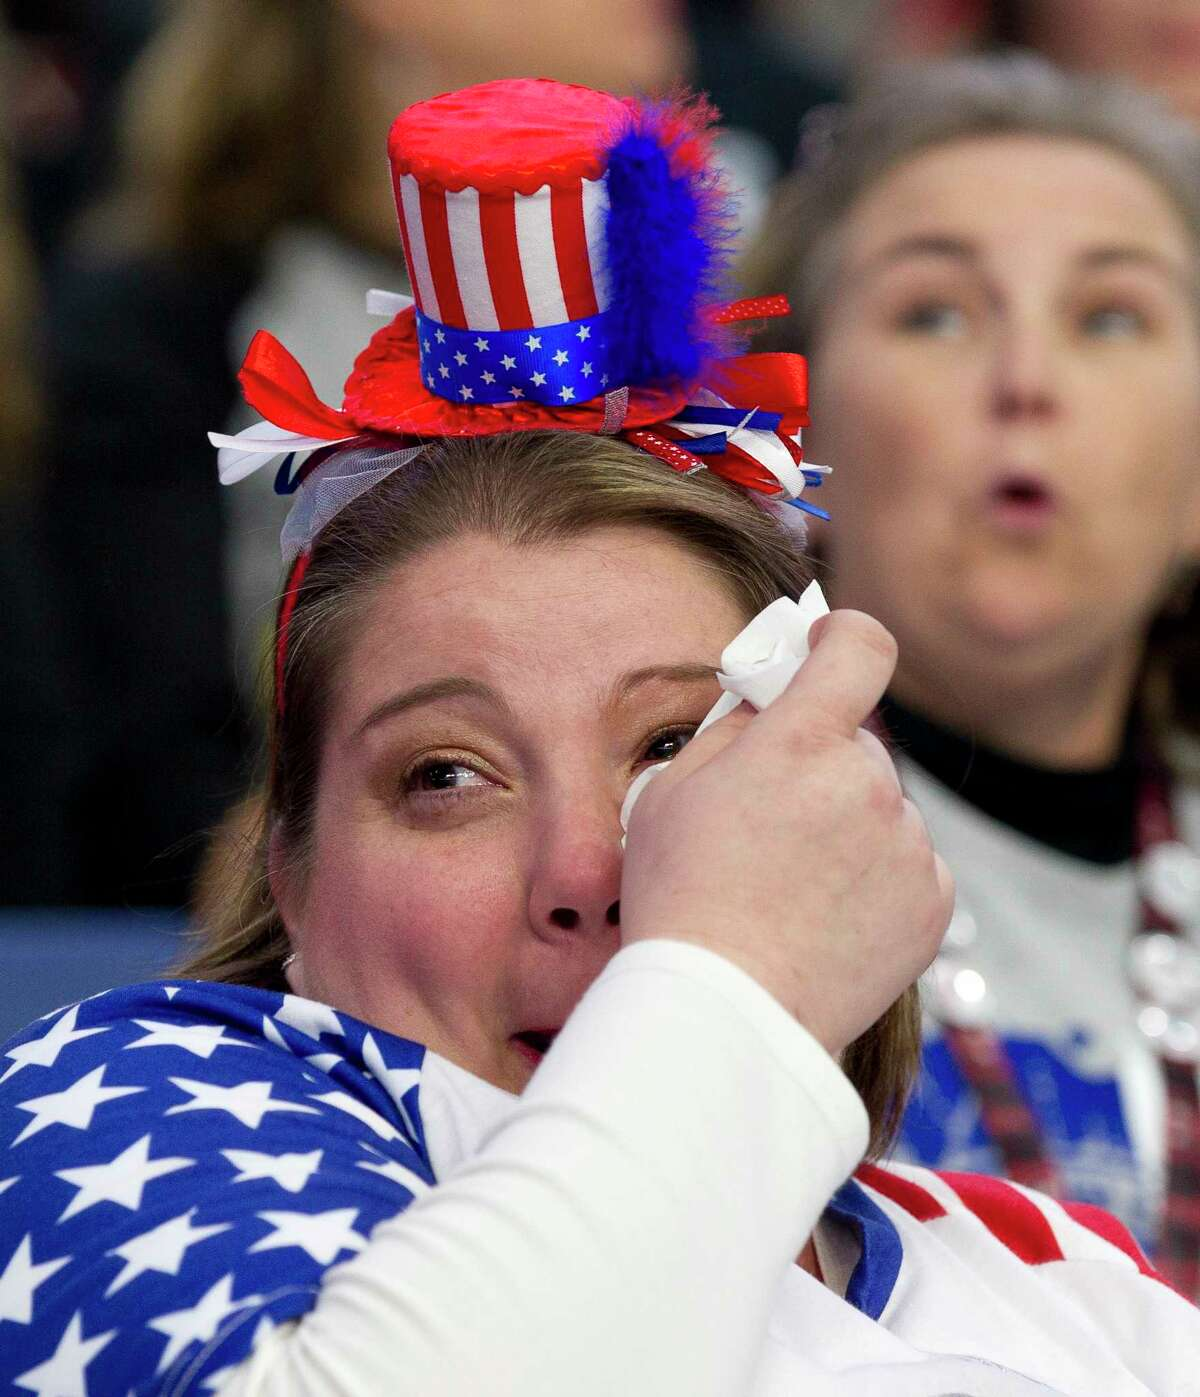 Robinn Graves wipes tears from her eyes after the Porter High School band competed in the UIL Marching Band State Championships at the Alamodome, Wednesday, Nov. 8, 2017, in San Antonio.